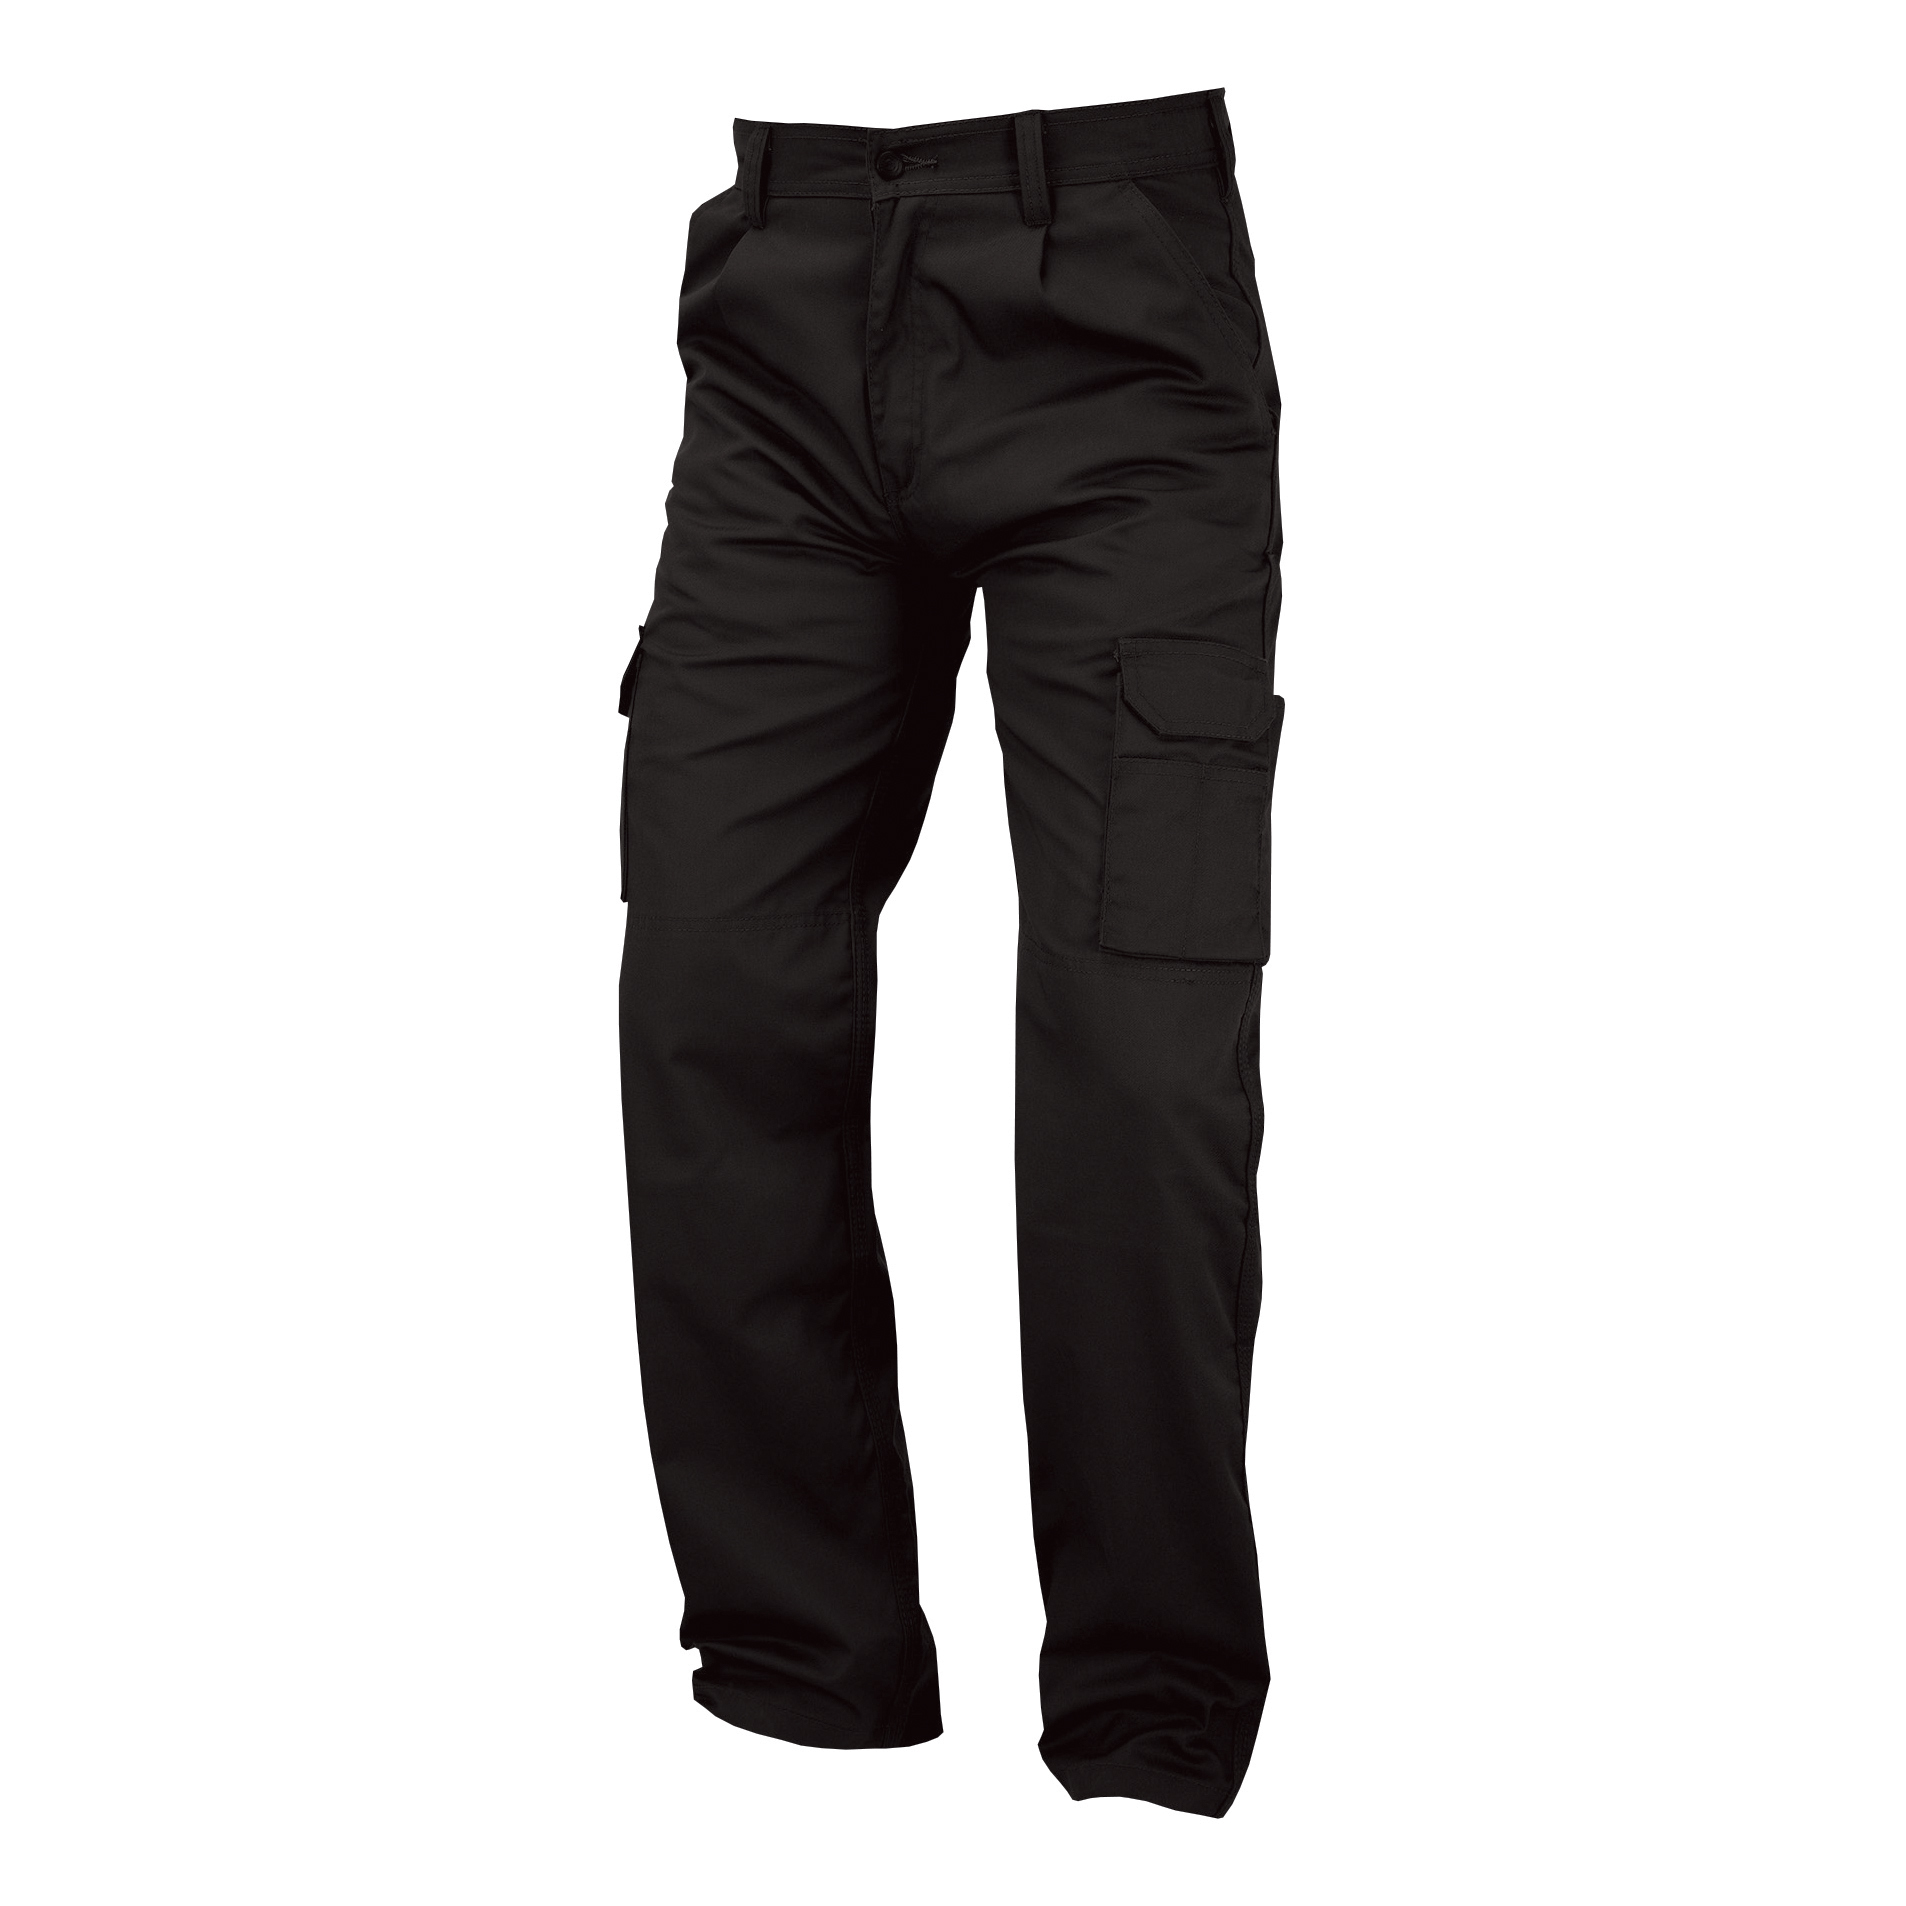 Combat Trousers Polycotton with Pockets Size 36in Long Black Ref PCTHWBL36T 1-3 Days Lead Time